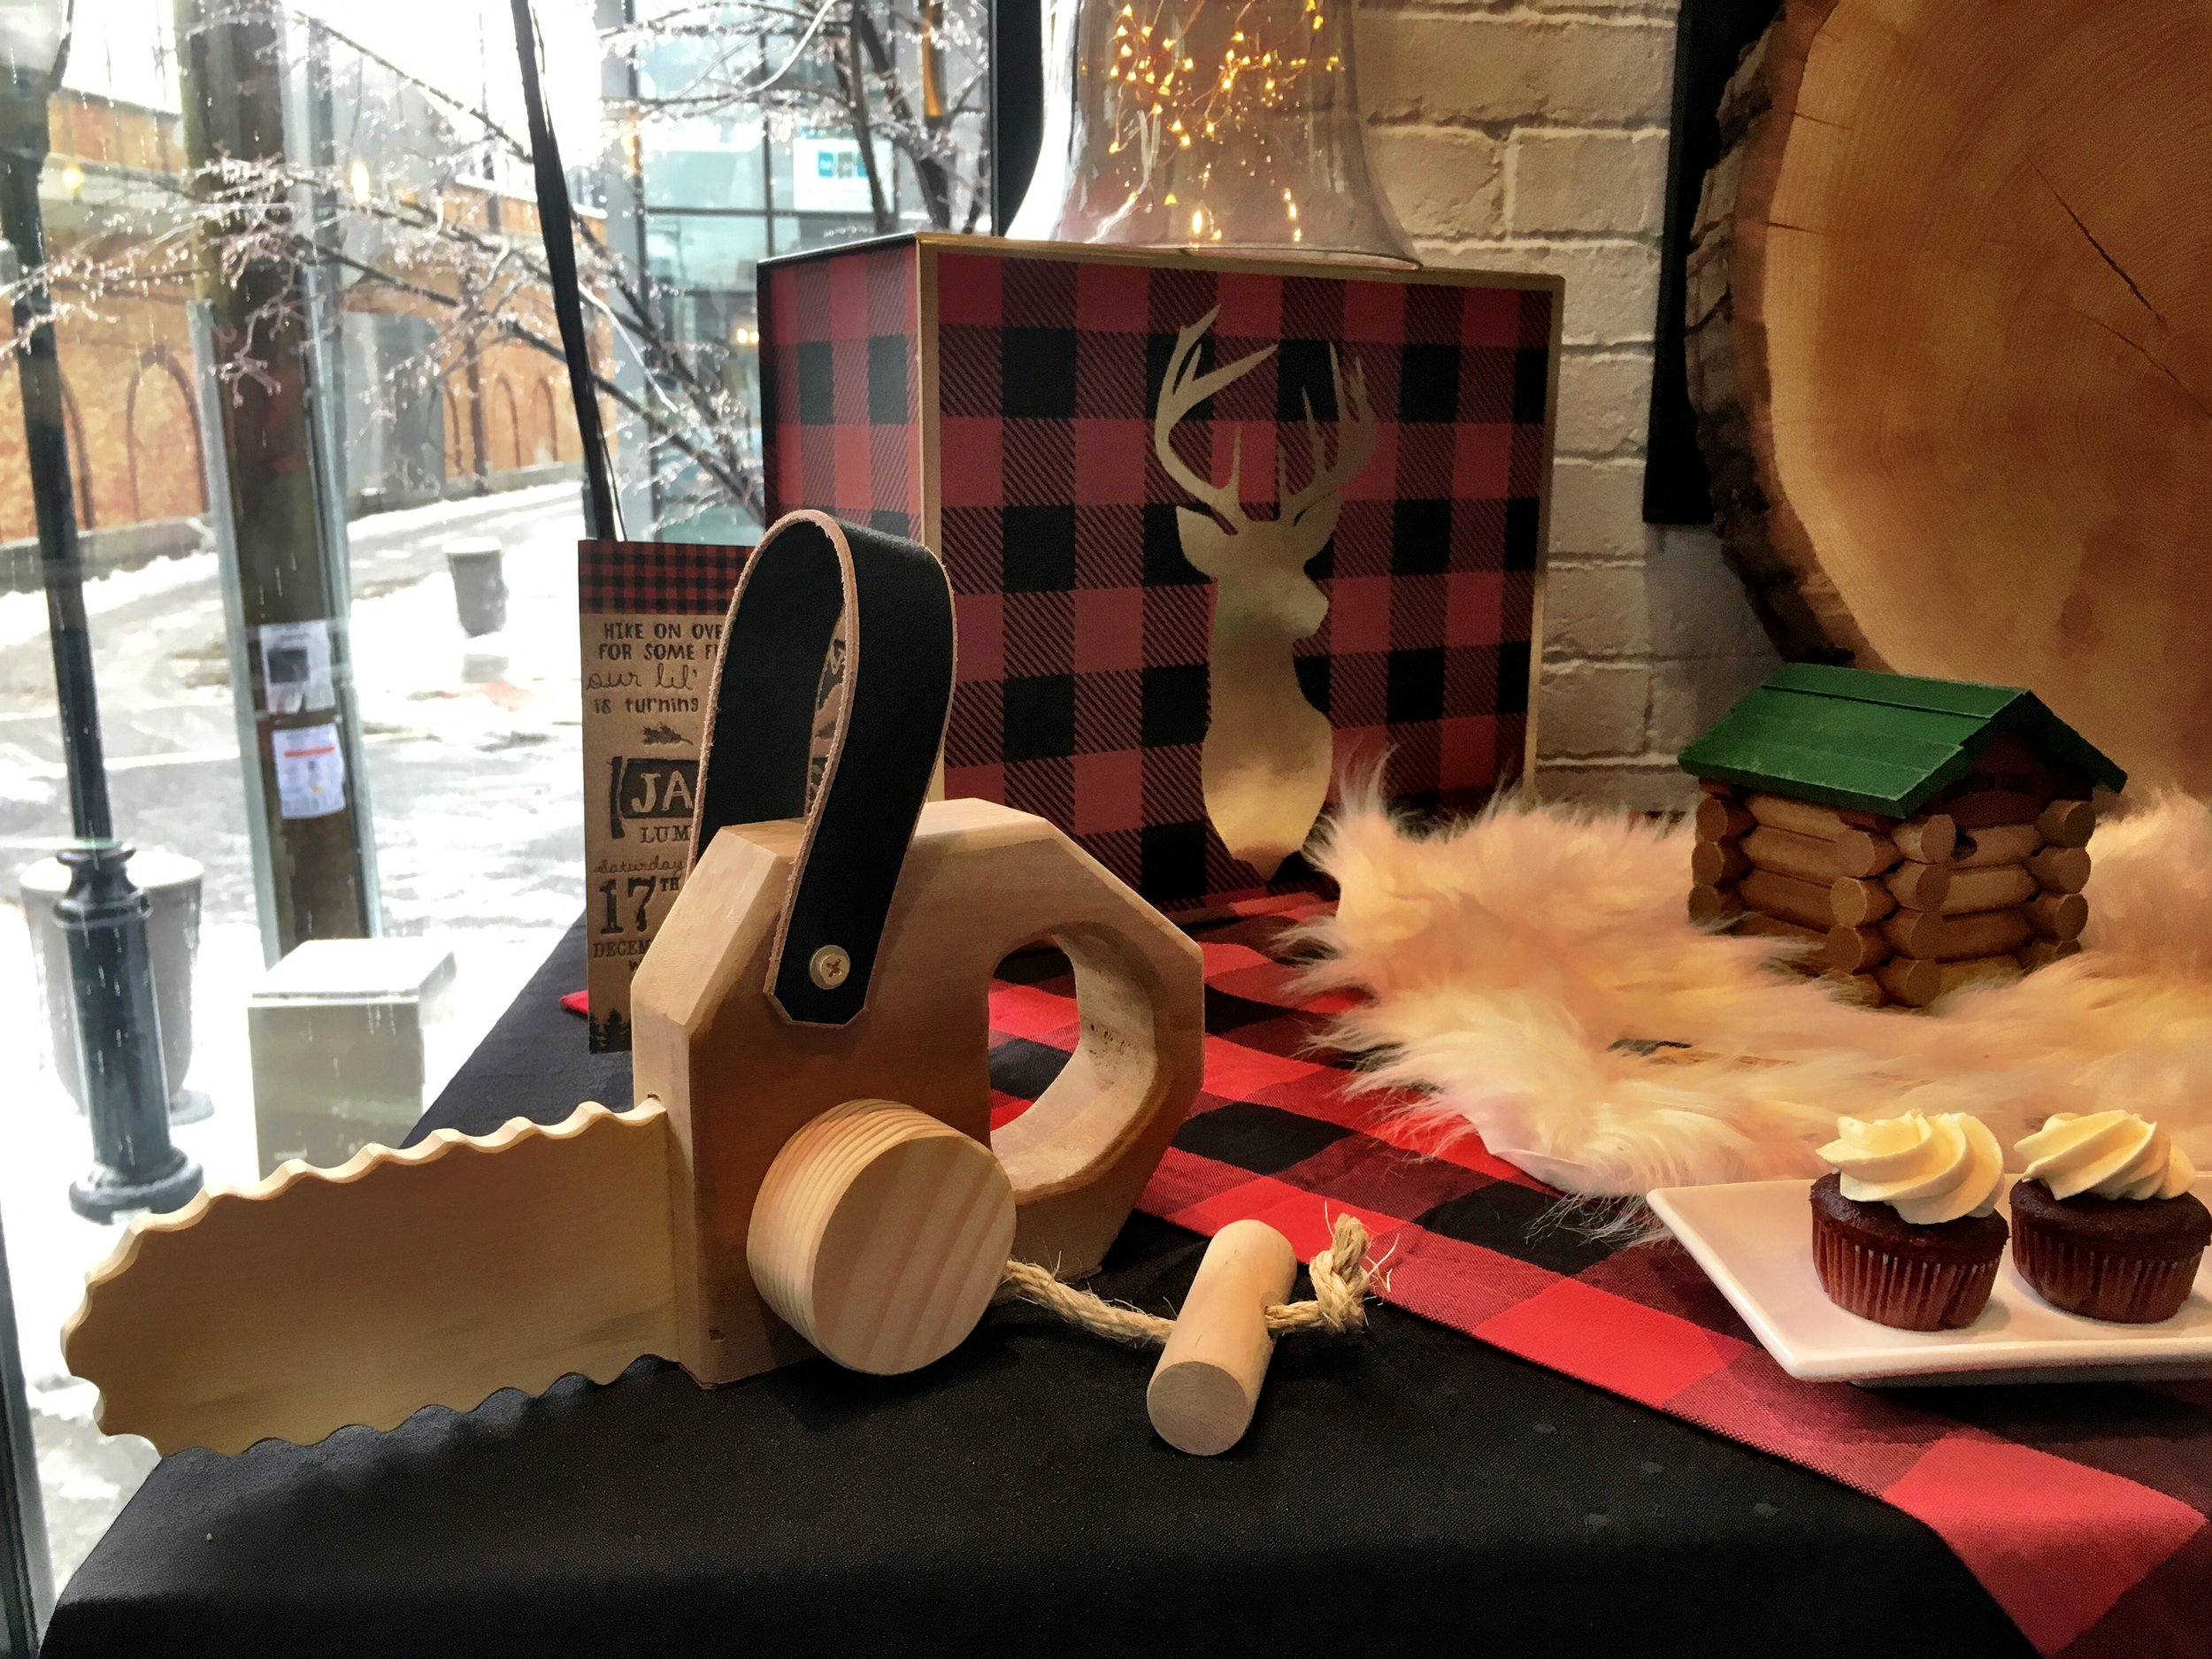 Wooden toy chainsaw from Etsy